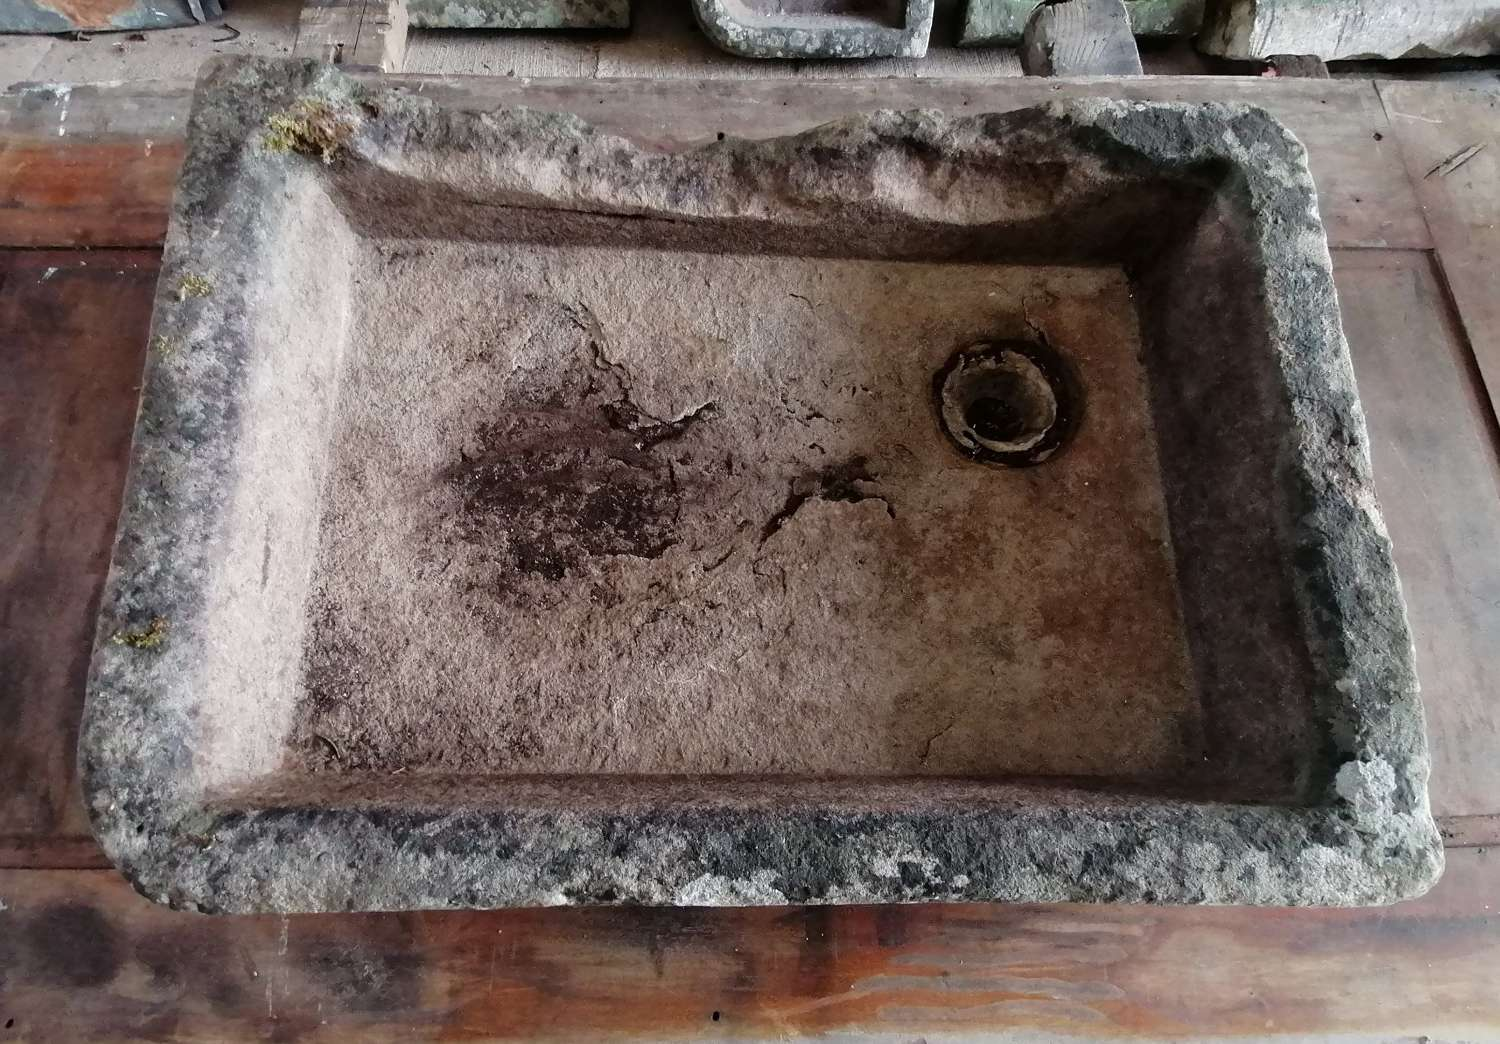 M1424 AN ANTIQUE RECLAIMED WEATHERED STONE SINK / TROUGH / PLANTER